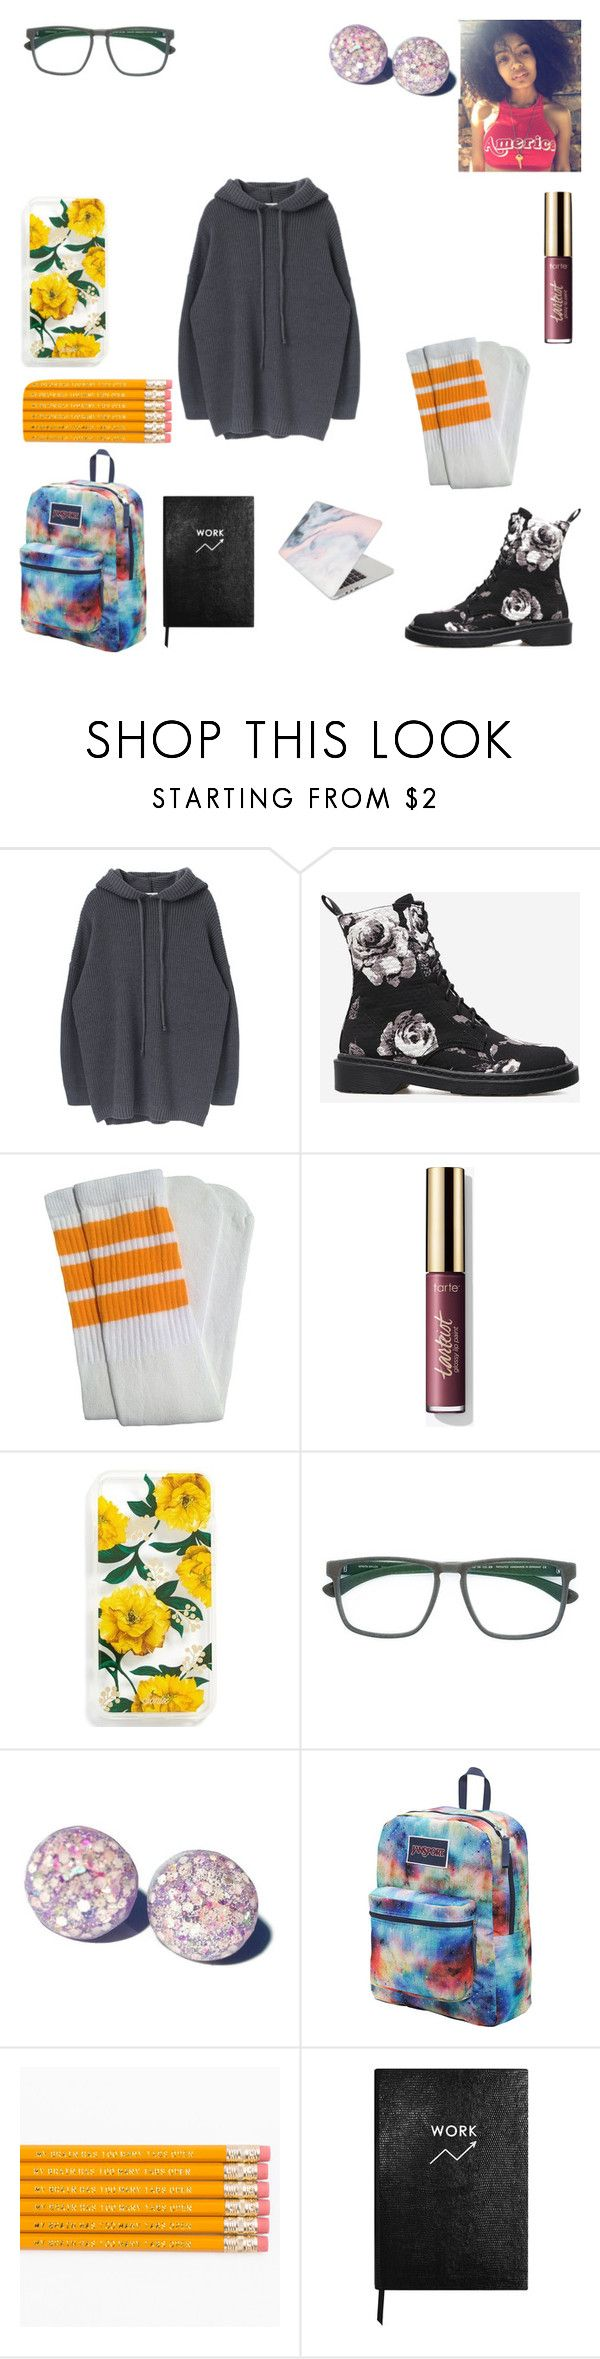 """Left my phone + bus pass home :-("" by keneko17therainbowprincess on Polyvore featuring Sonix, Mykita, JanSport, Sloane Stationery and Recover"